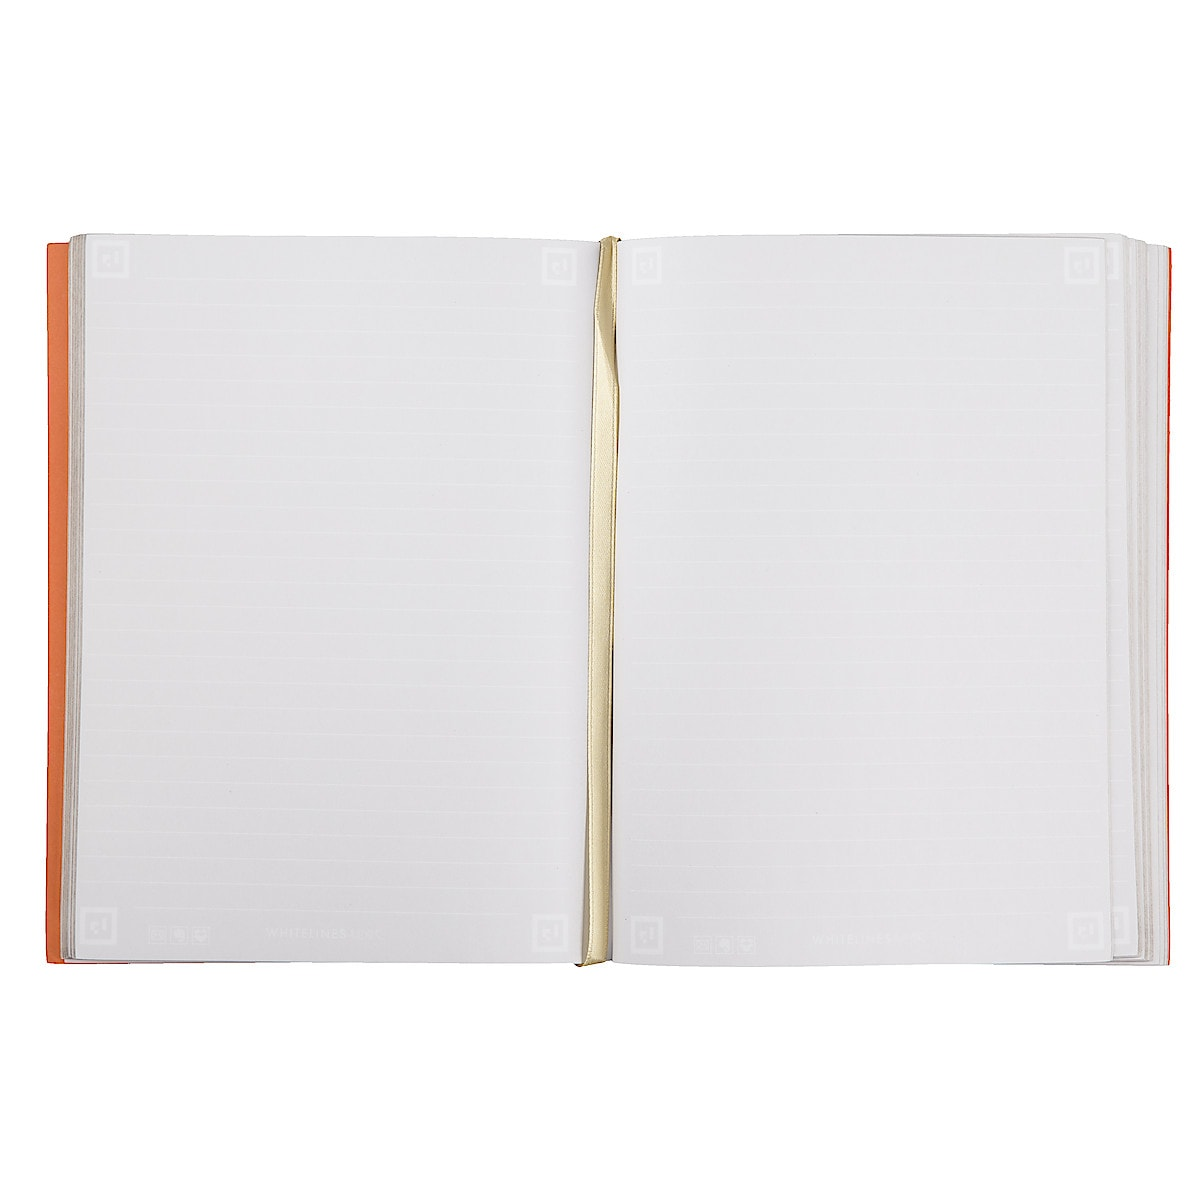 Whitelines A5 Lined Notebook